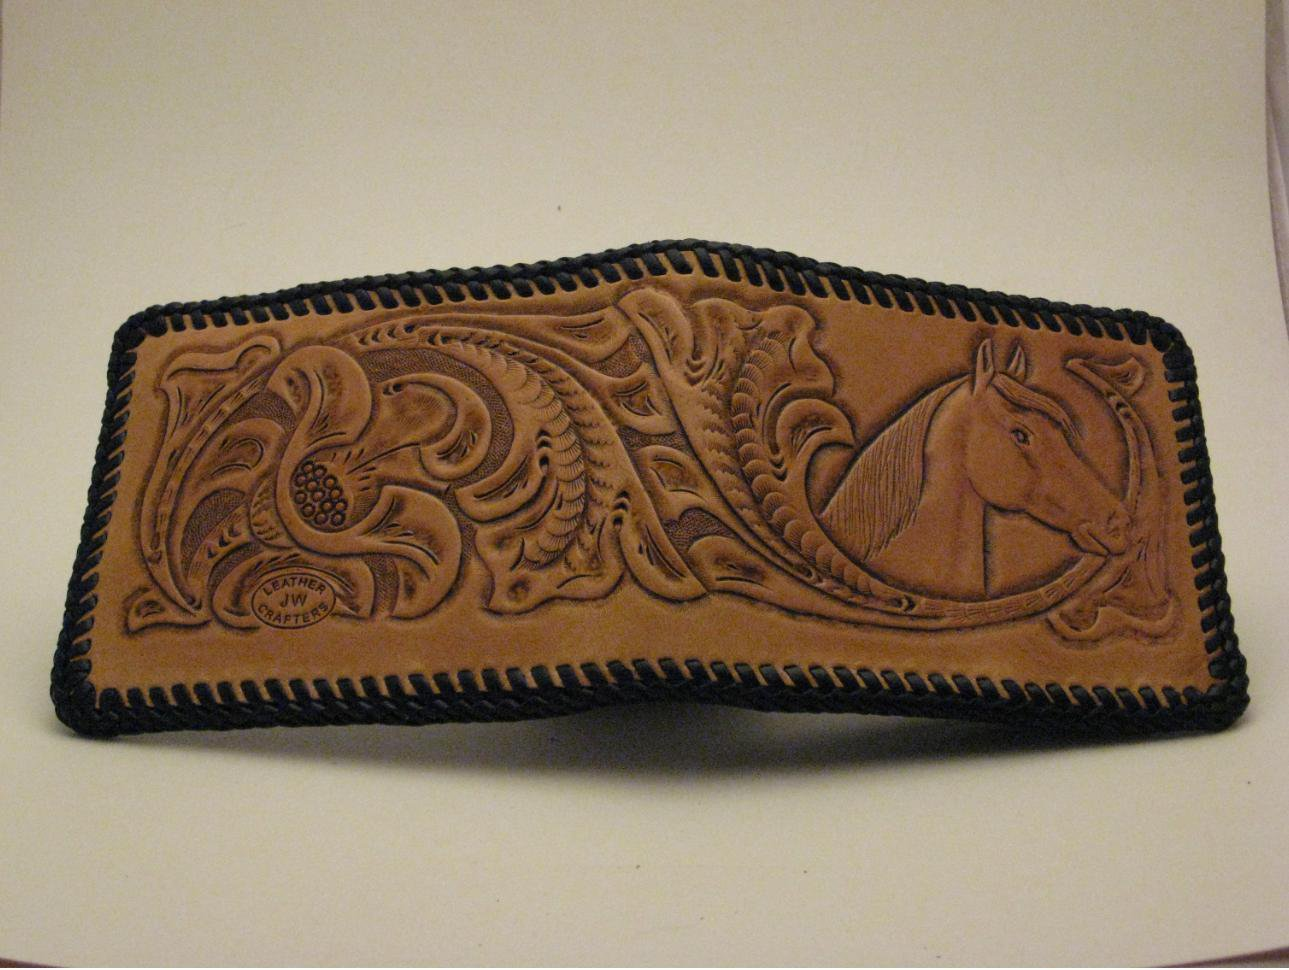 Men's Deluxe Wallet, Chestnut Tan, Black Lacing, Handtooled Leather, Western Floral, Horse W0004.1